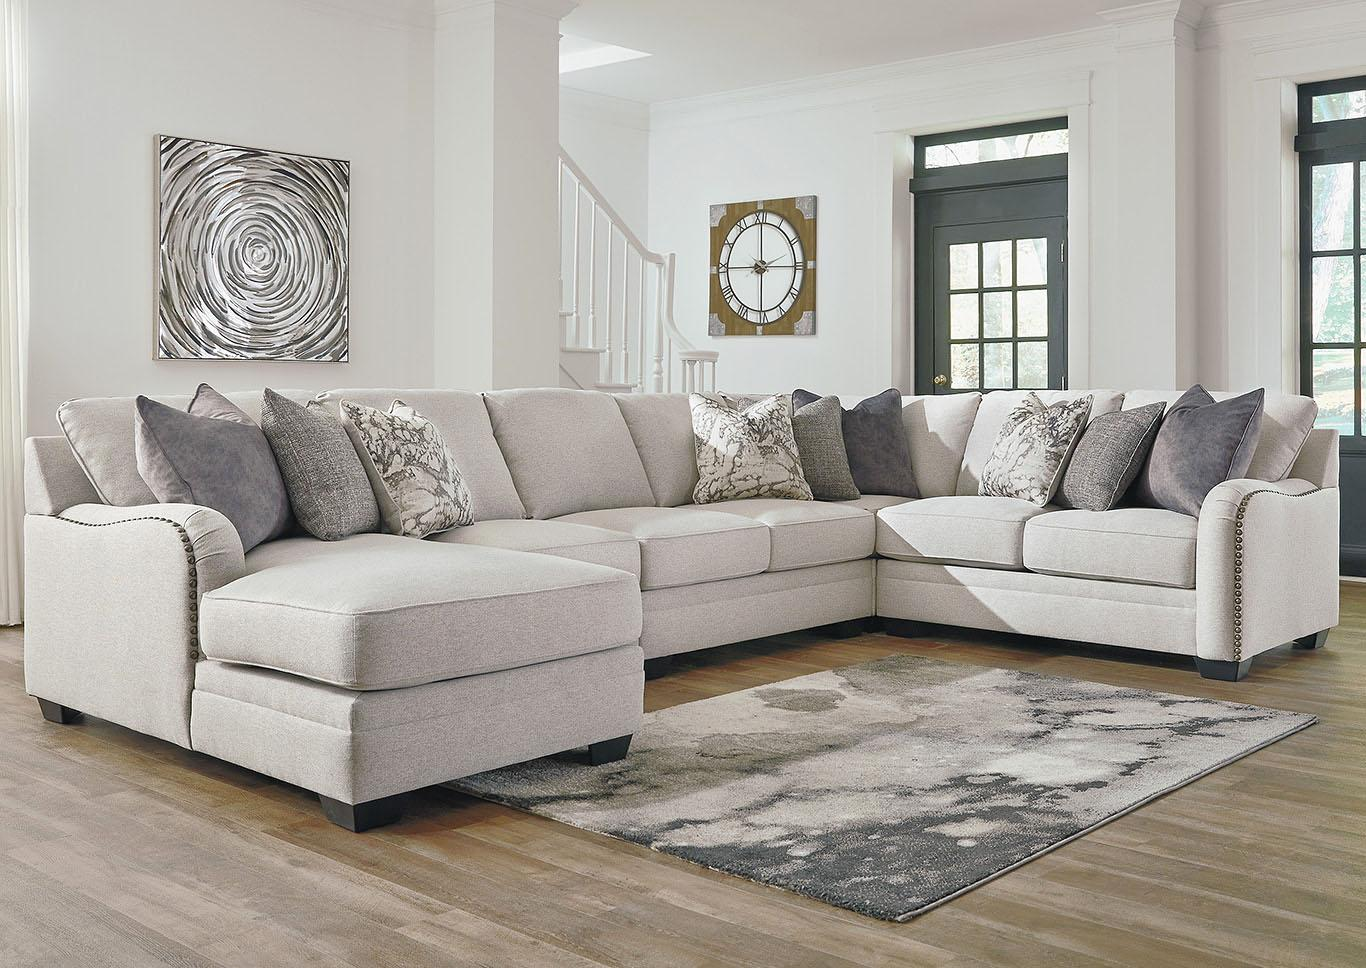 Dellara Right Facing Sectional